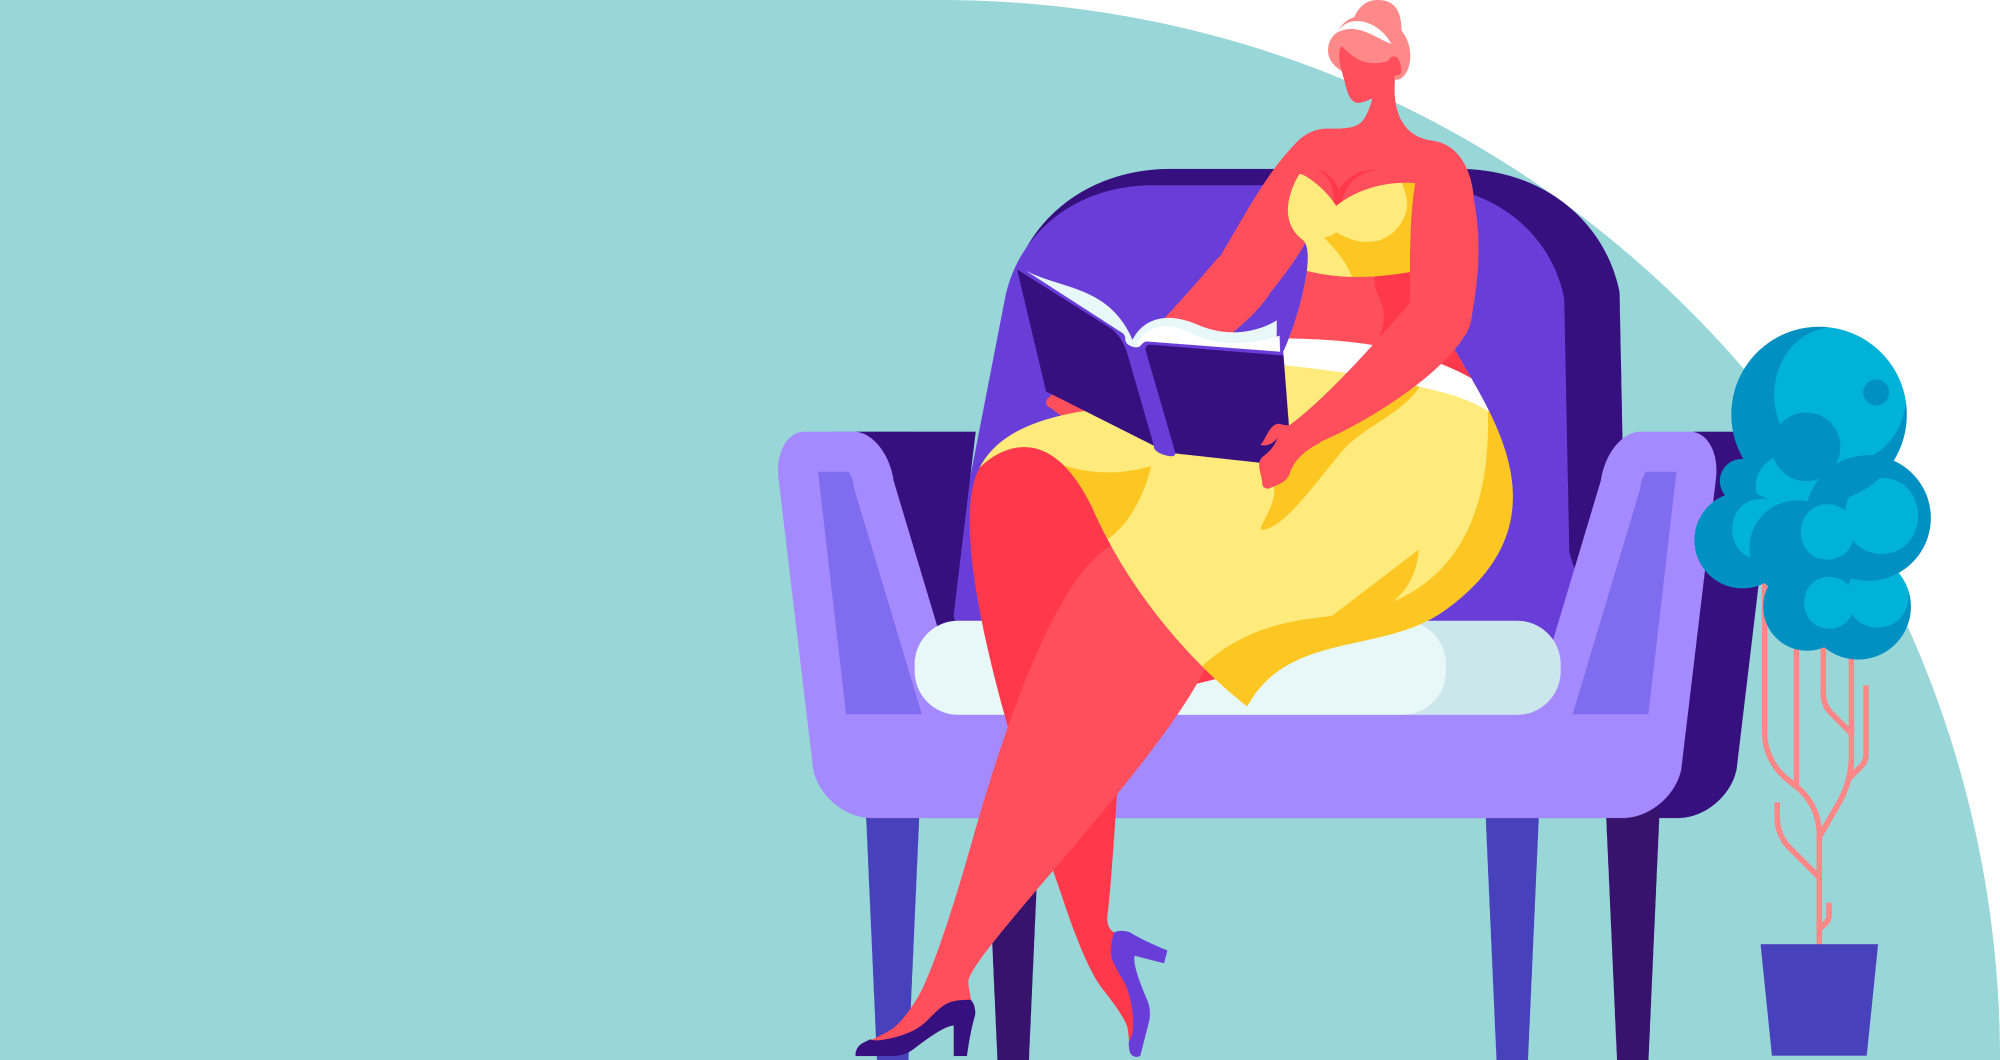 Illustration of a woman reading in a large chair next to a plant.